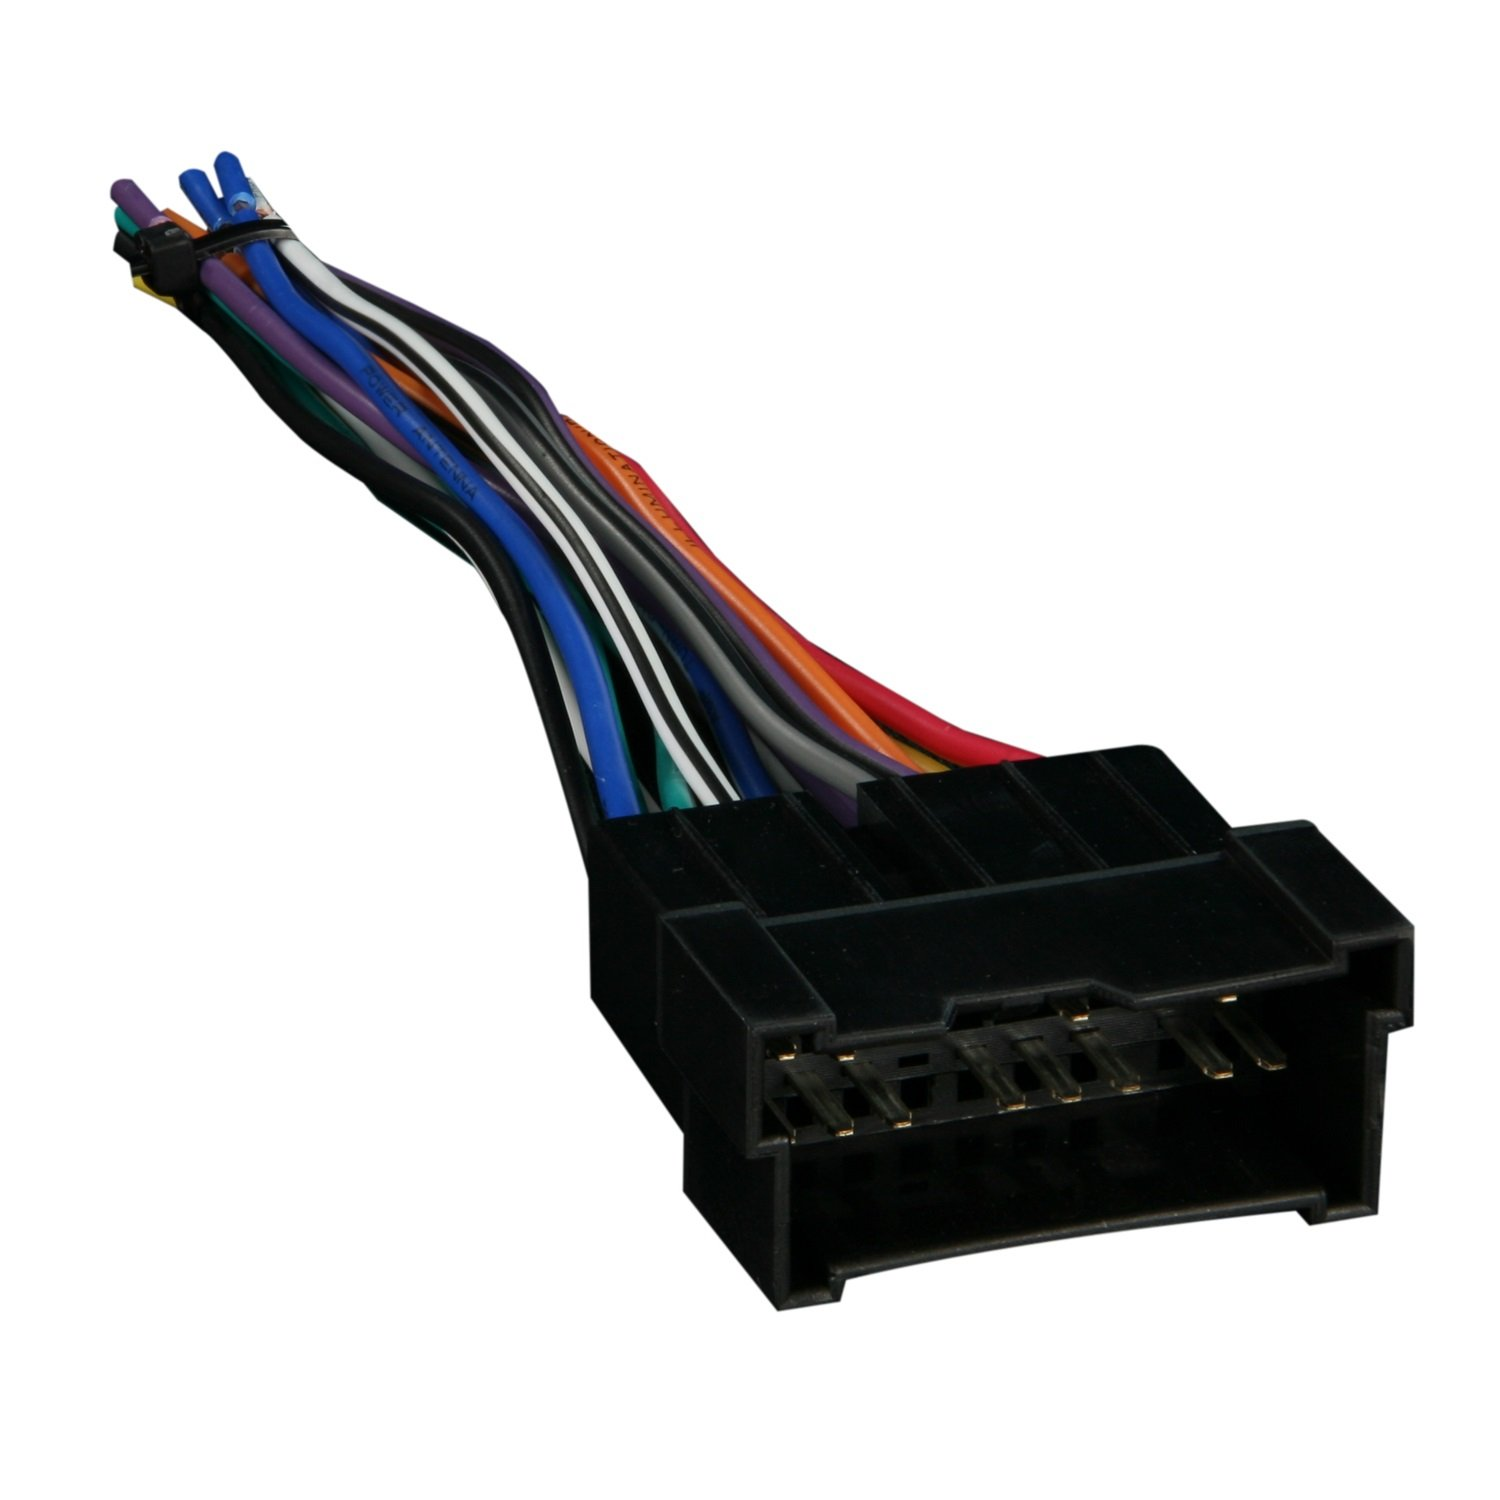 617yeBmOquL._SL1500_ amazon com metra 70 7301 radio wiring harness for hyundai kia 99 GM Factory Radio Wiring Harness at webbmarketing.co